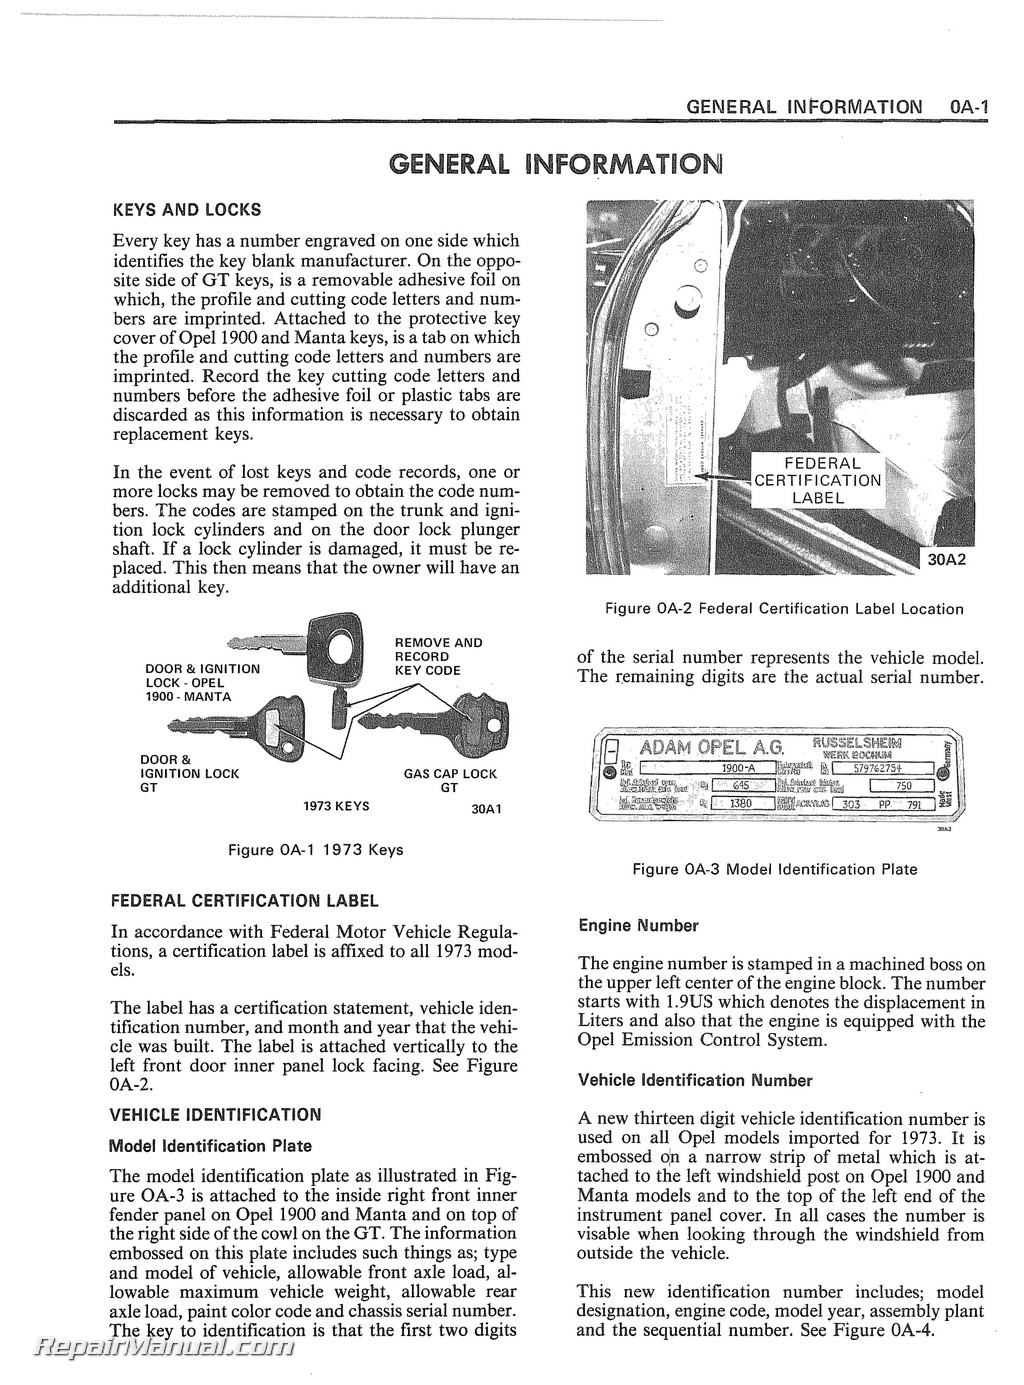 1973 opel gt wiring diagrams  1973  free engine image for